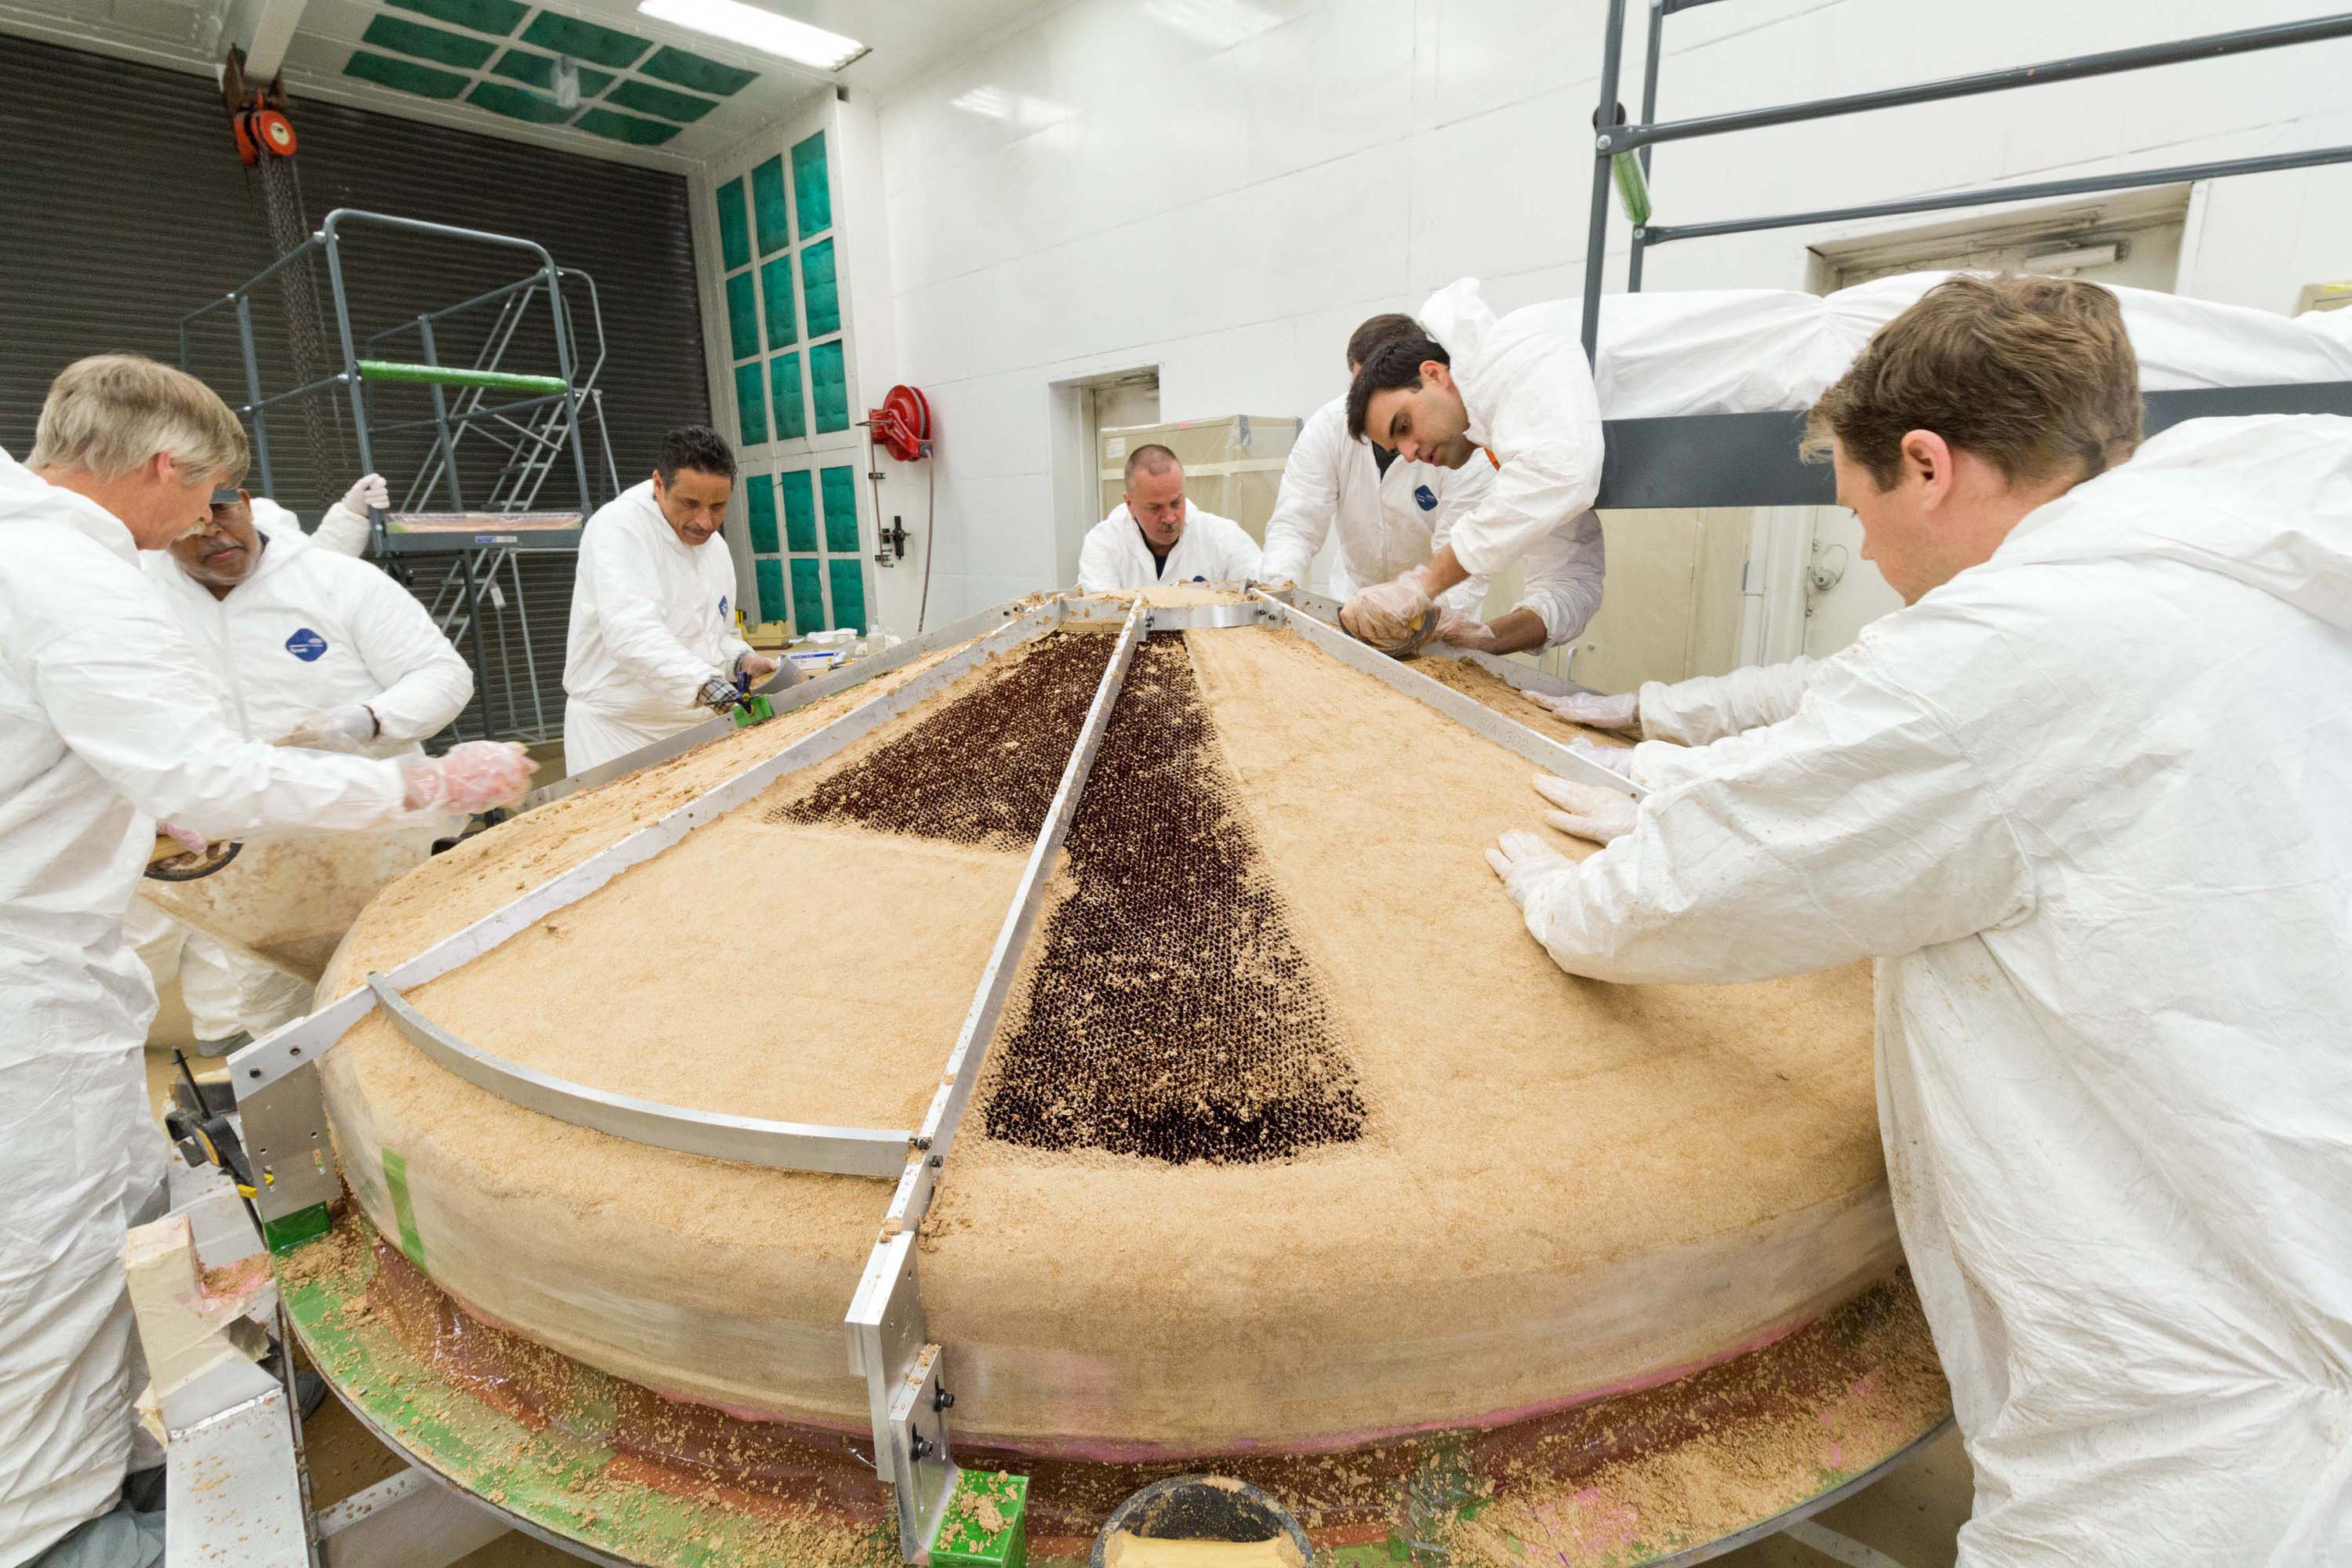 In this February 2015 scene from a clean room at Lockheed Martin Space Systems, Denver, specialists are building the heat shield to protect NASA's InSight spacecraft when it is speeding through the Martian atmosphere.